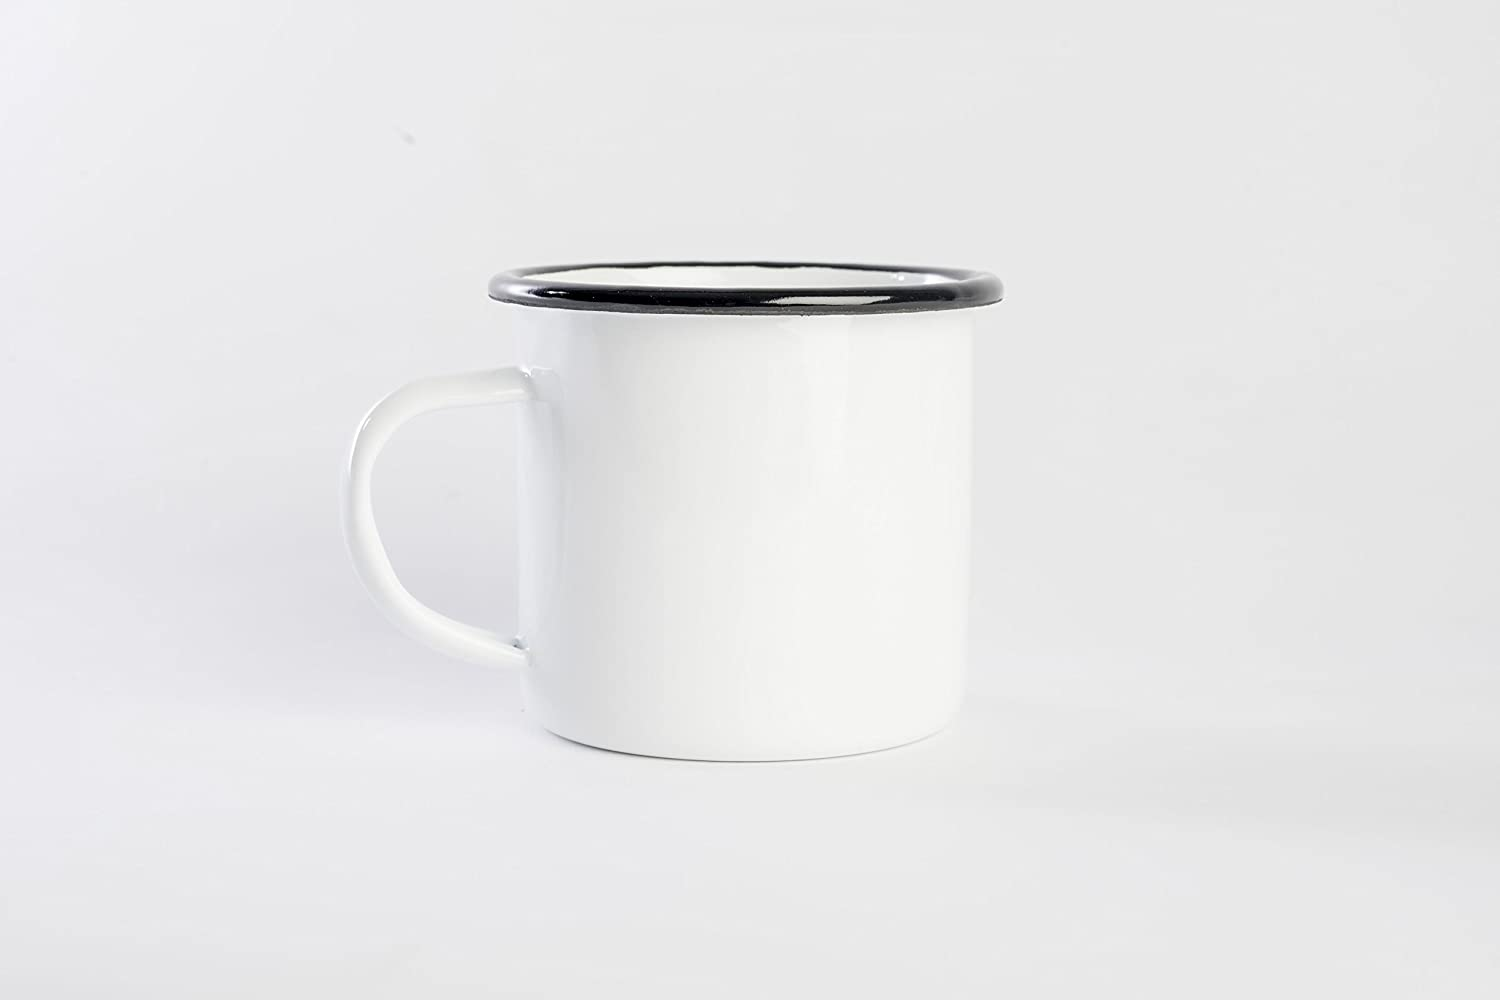 Camping Mugs, For Cold/Hot Beverages, Great for the outdoors or staying in, Enamel Mugs 12 OZ